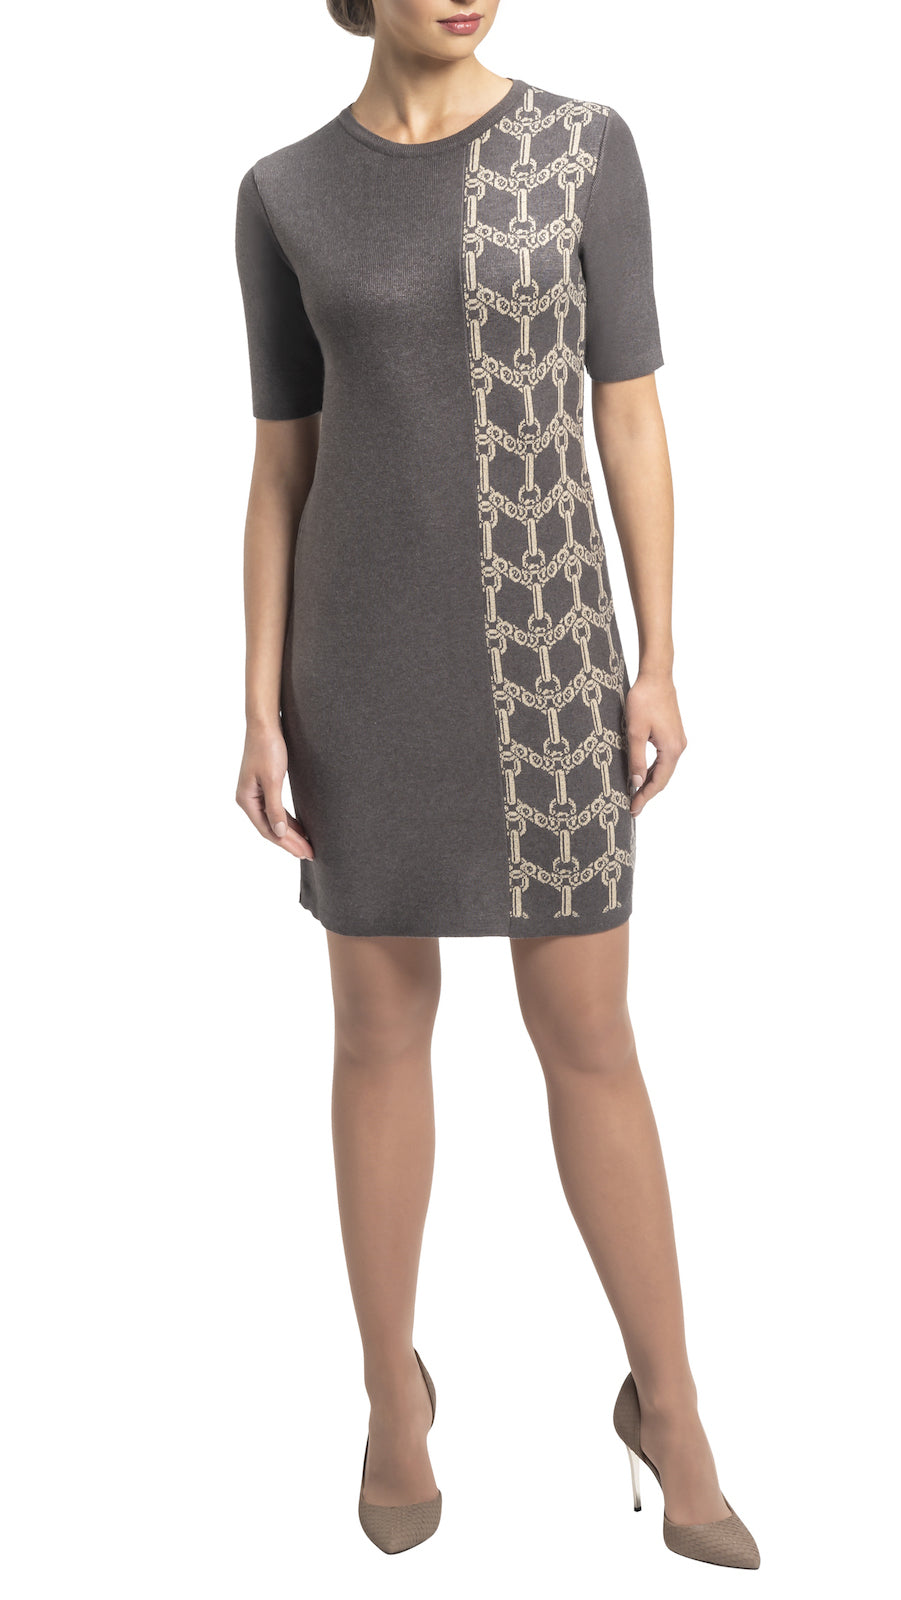 CONTEMPO Janie knitted dress, Taupe-Beige